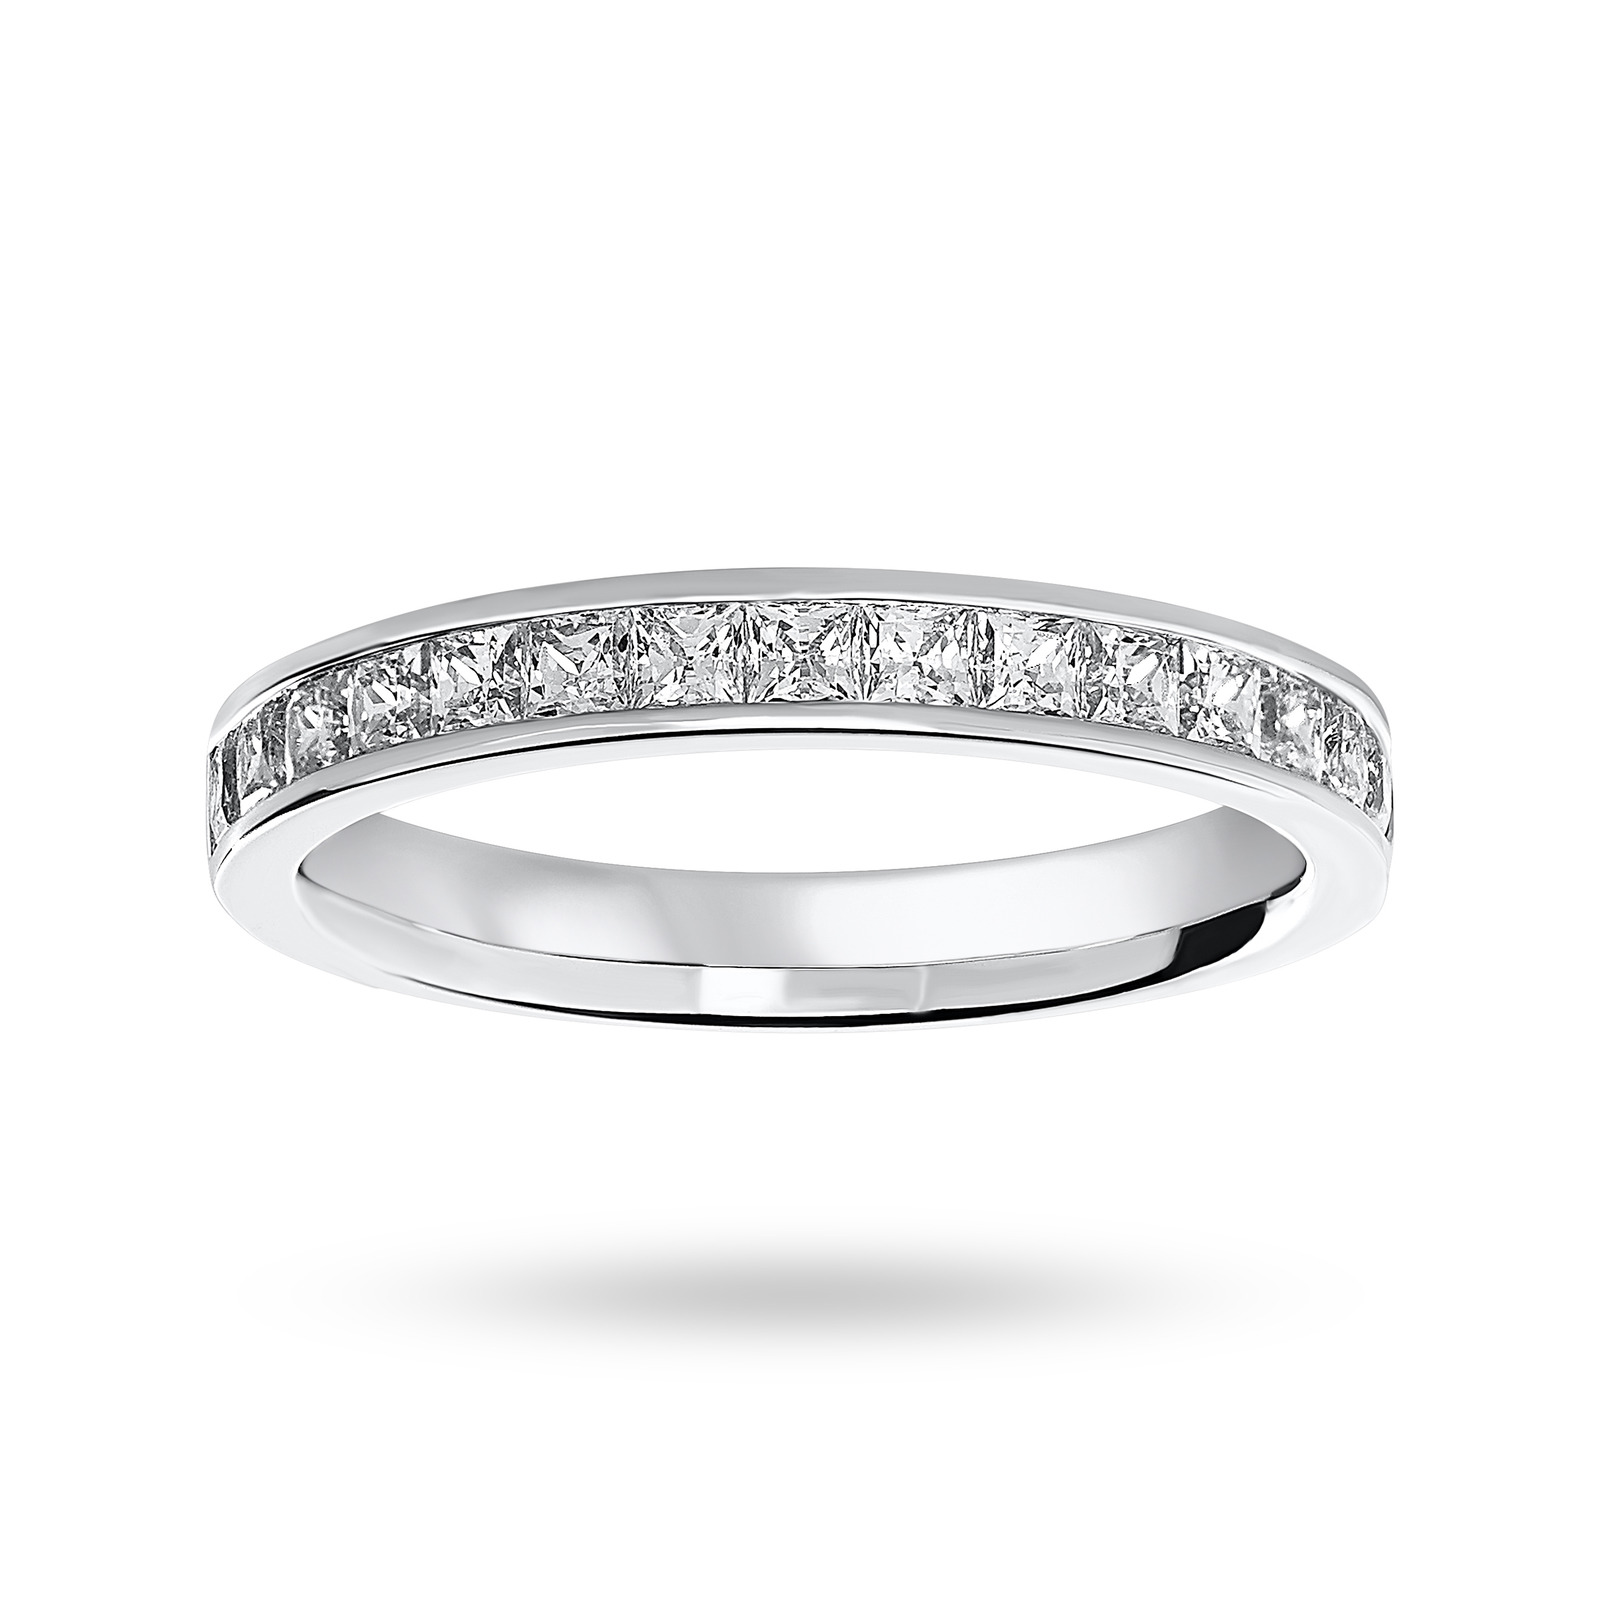 18 Carat White Gold 0.75 Carat Princess Cut Half Eternity Ring